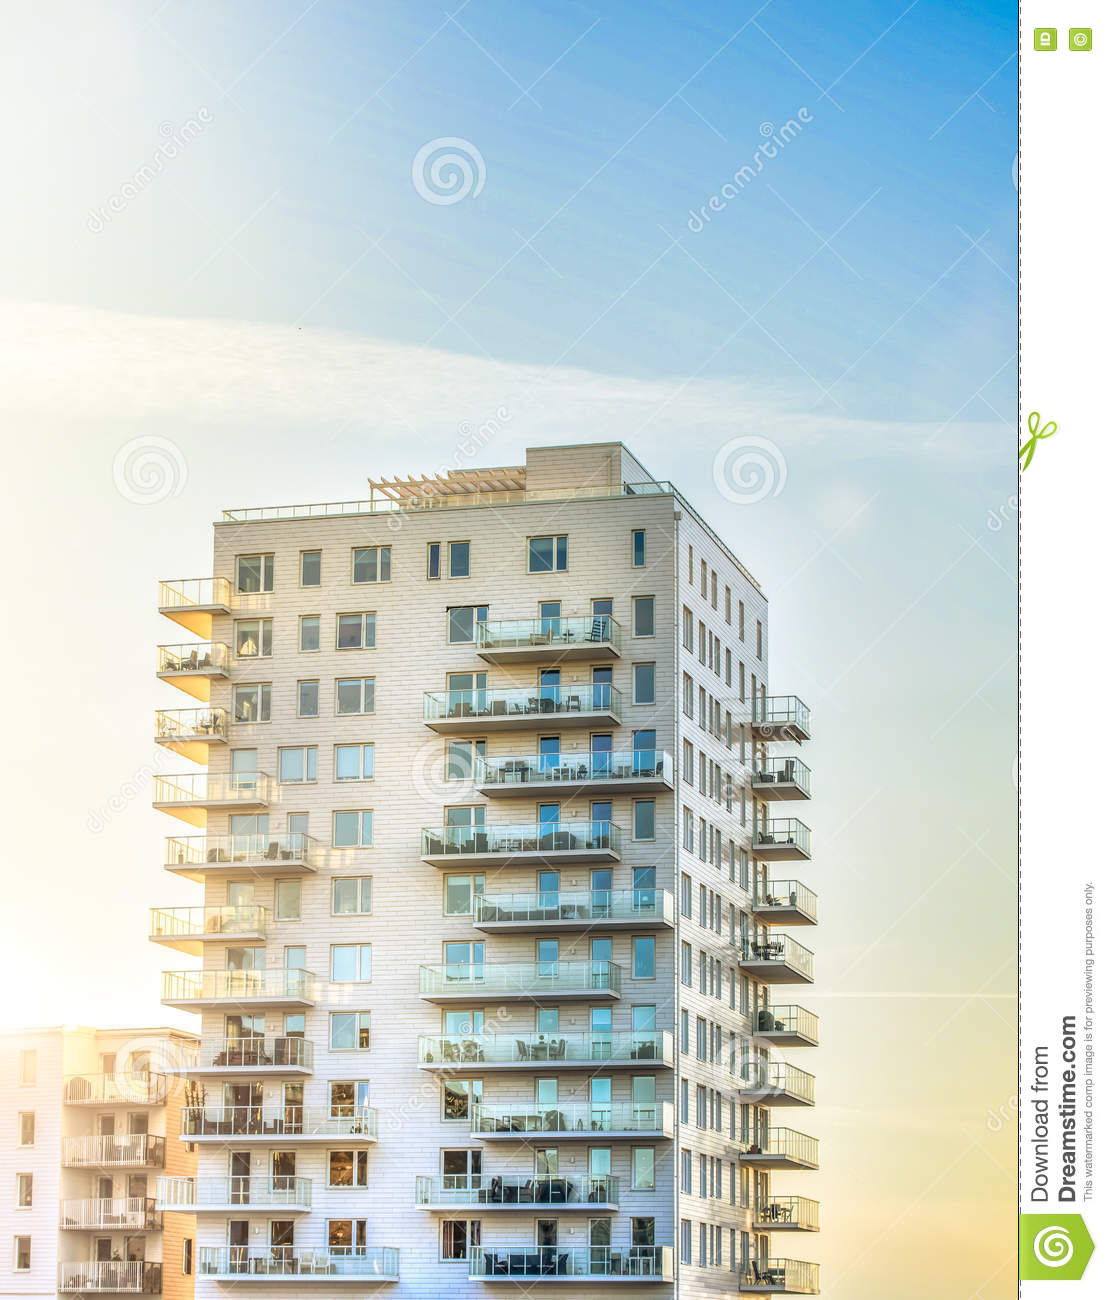 High Rise Apartments Stock Image. Image Of Balcony, Mist